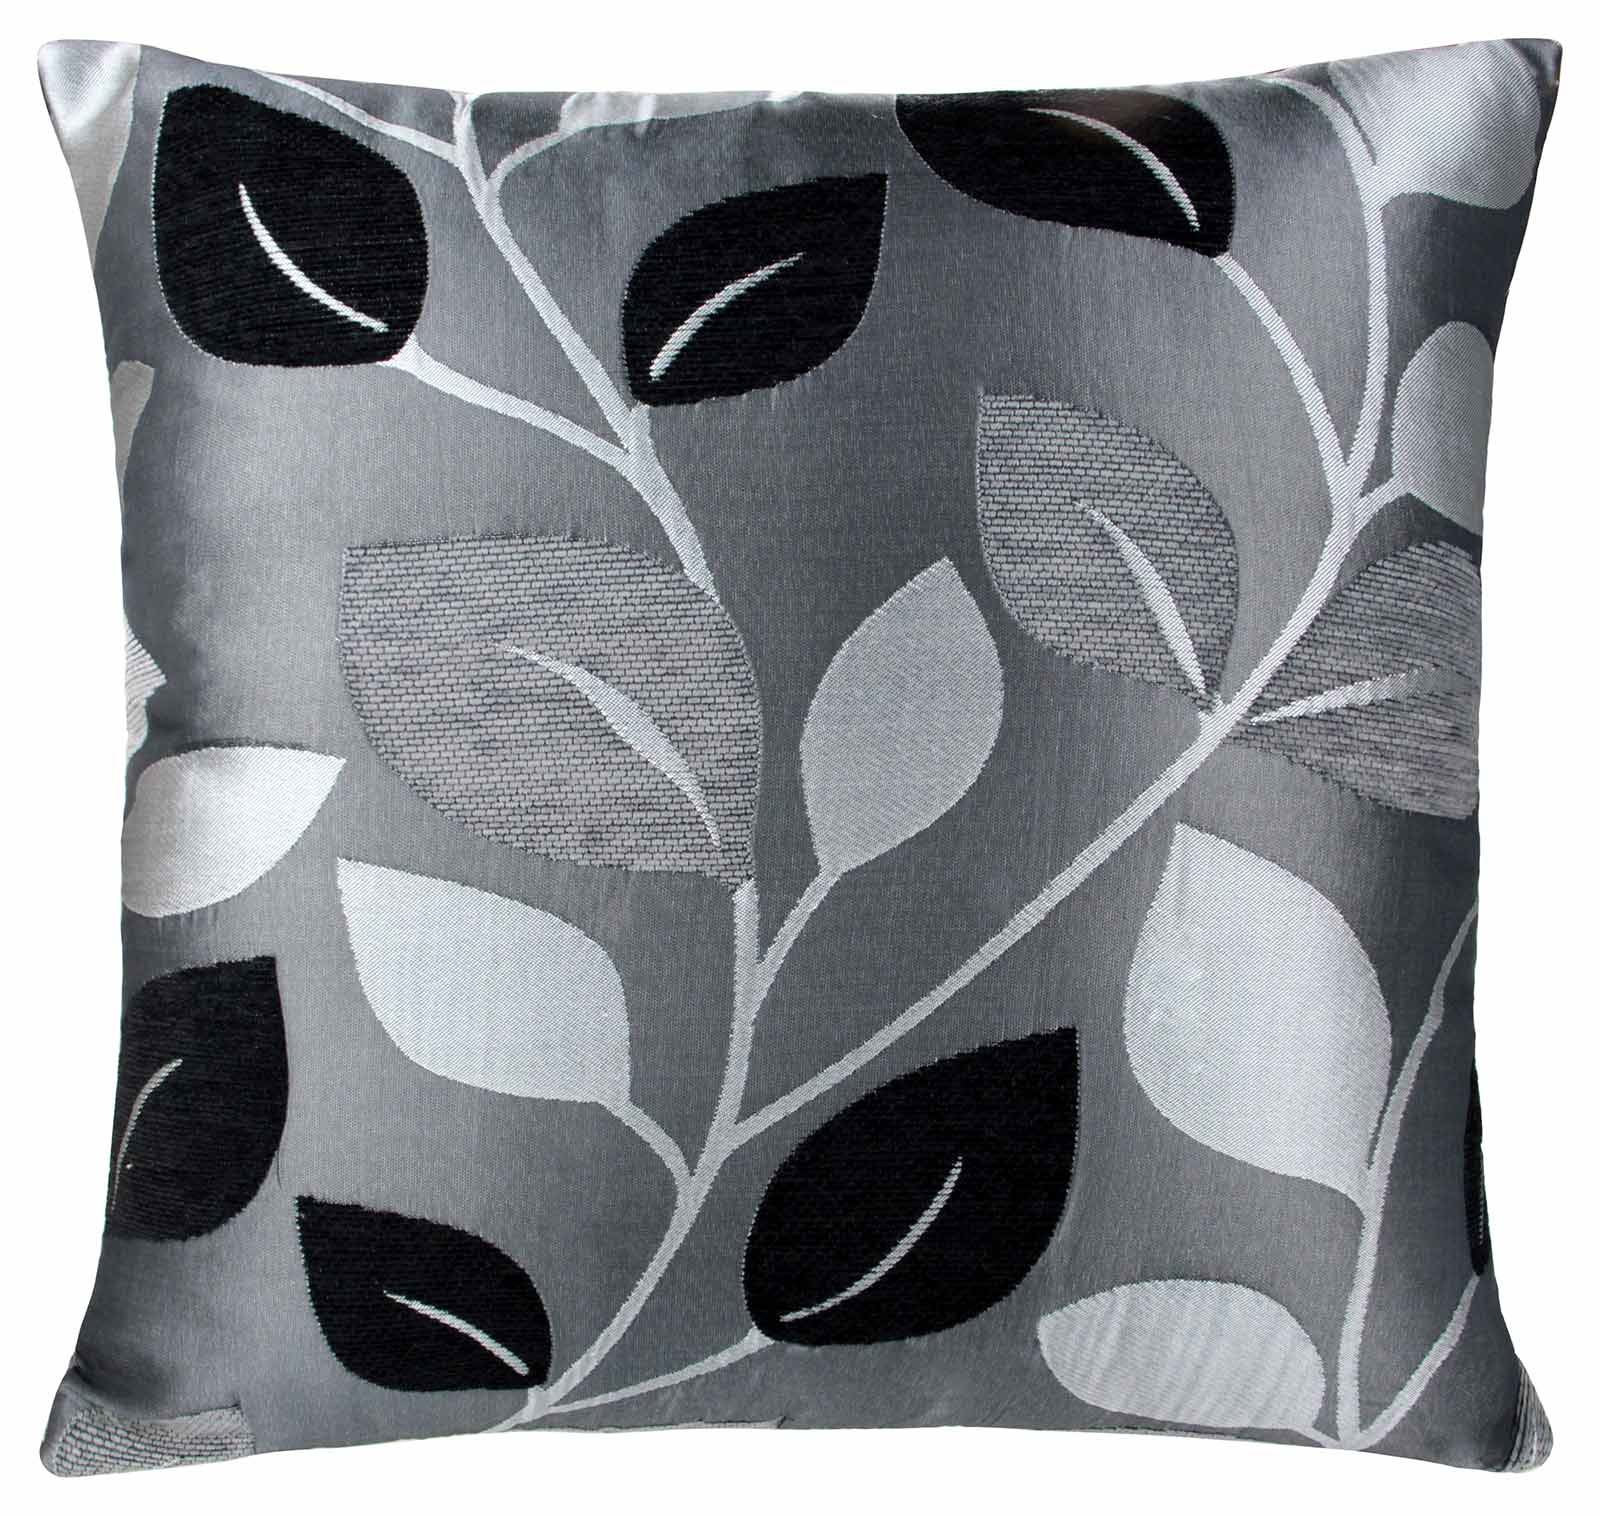 "EDEN LEAF FAUX SILK CUSHION COVER 18"" x 18"" SILVER GREY TEAL BLUE"